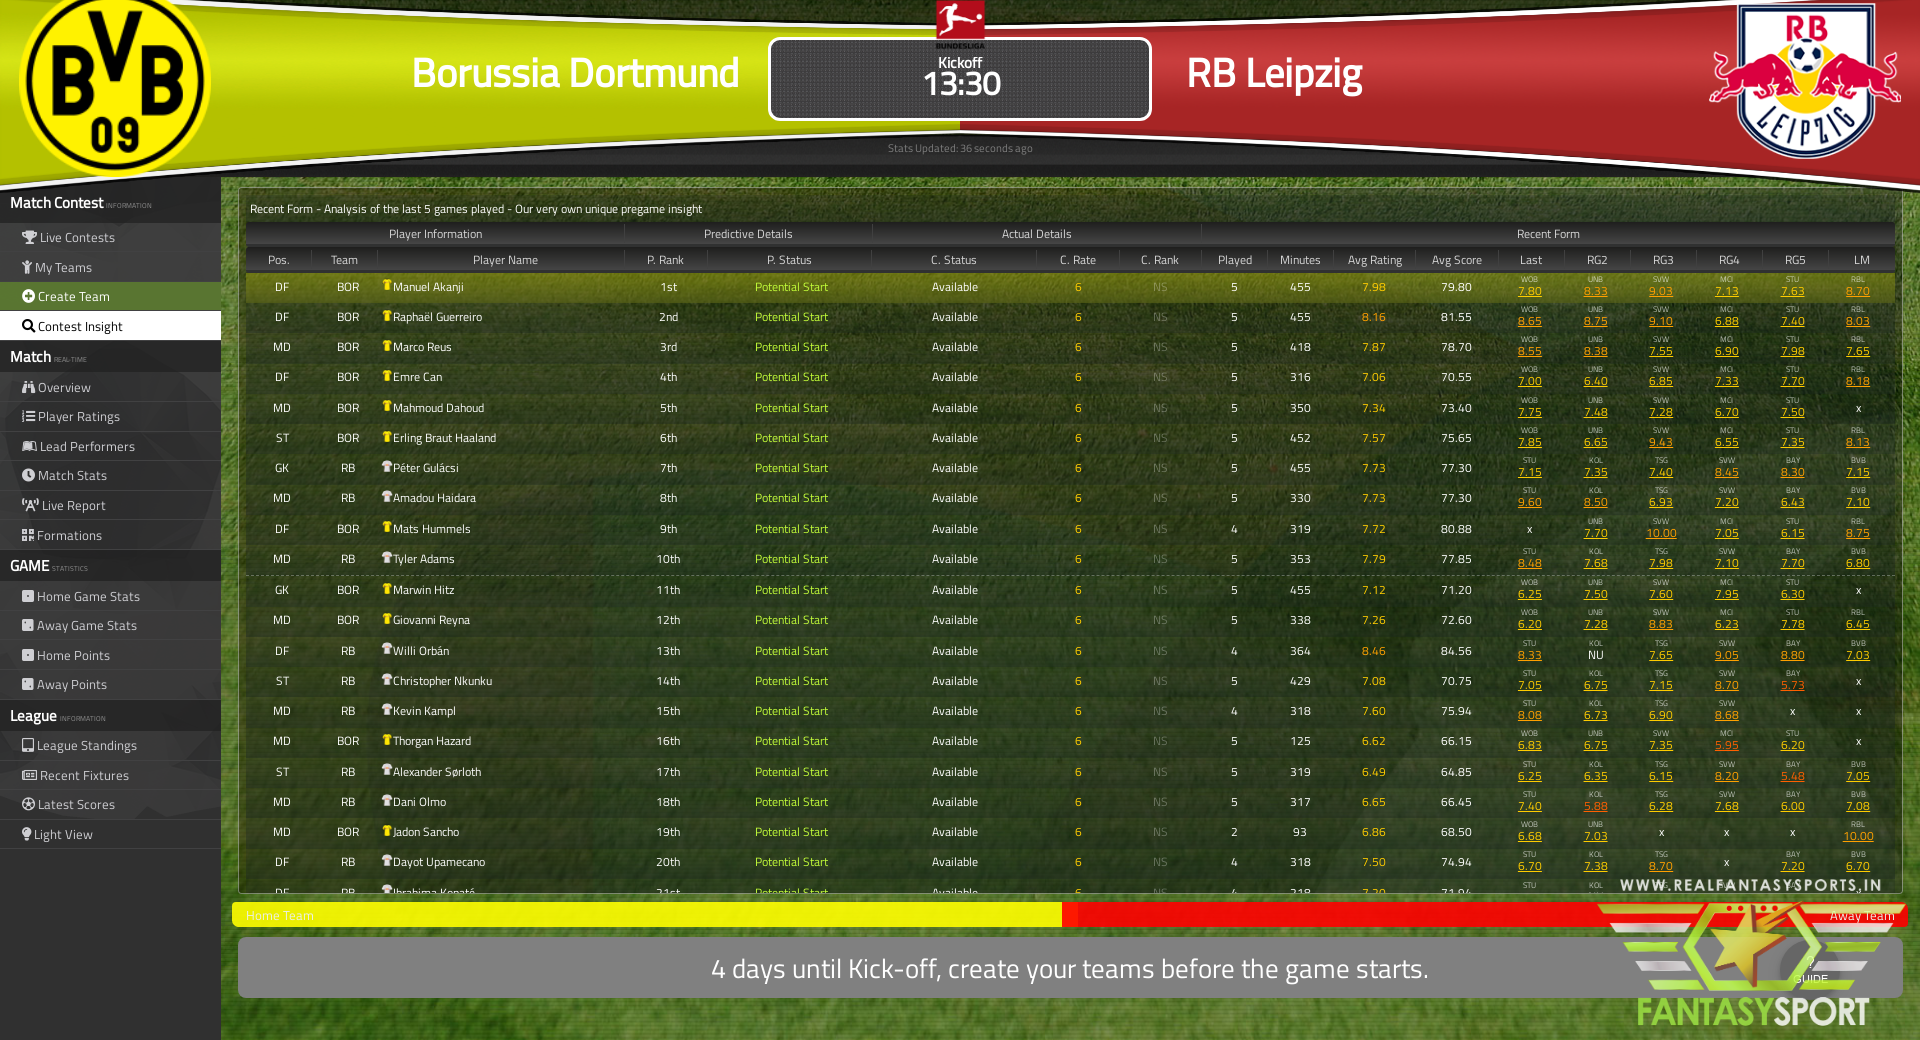 Fantasy Football Borussia Dortmund Vs Rb Leipzig 8th May 2021